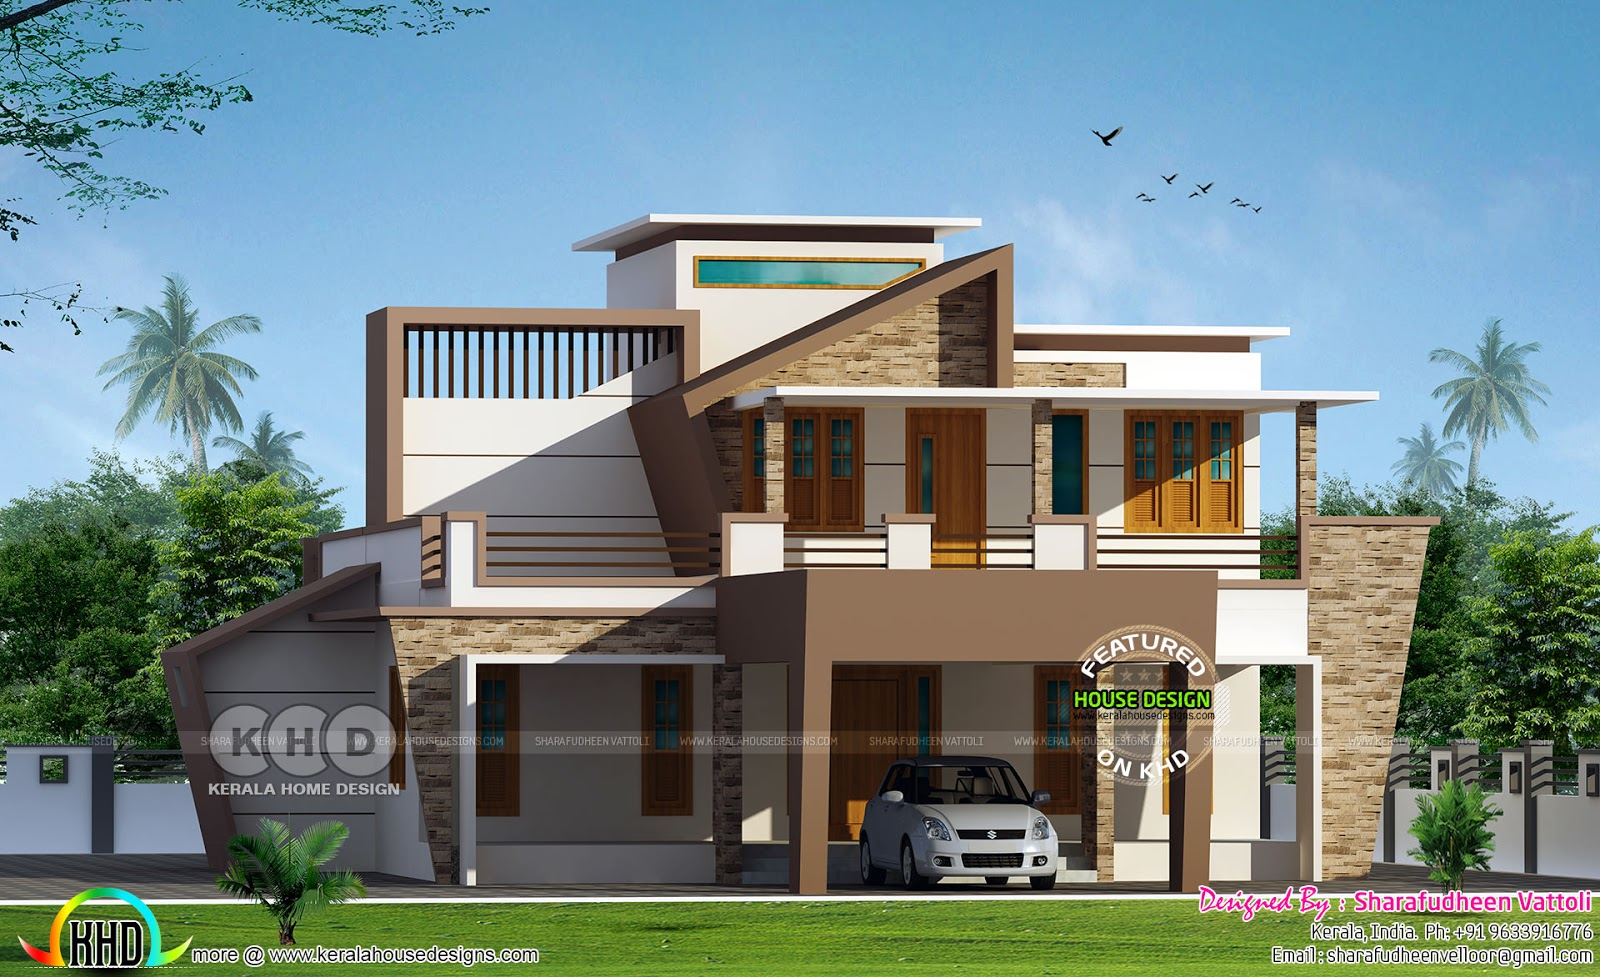 Contemporary Outlook For An Old Style Home Kerala Home